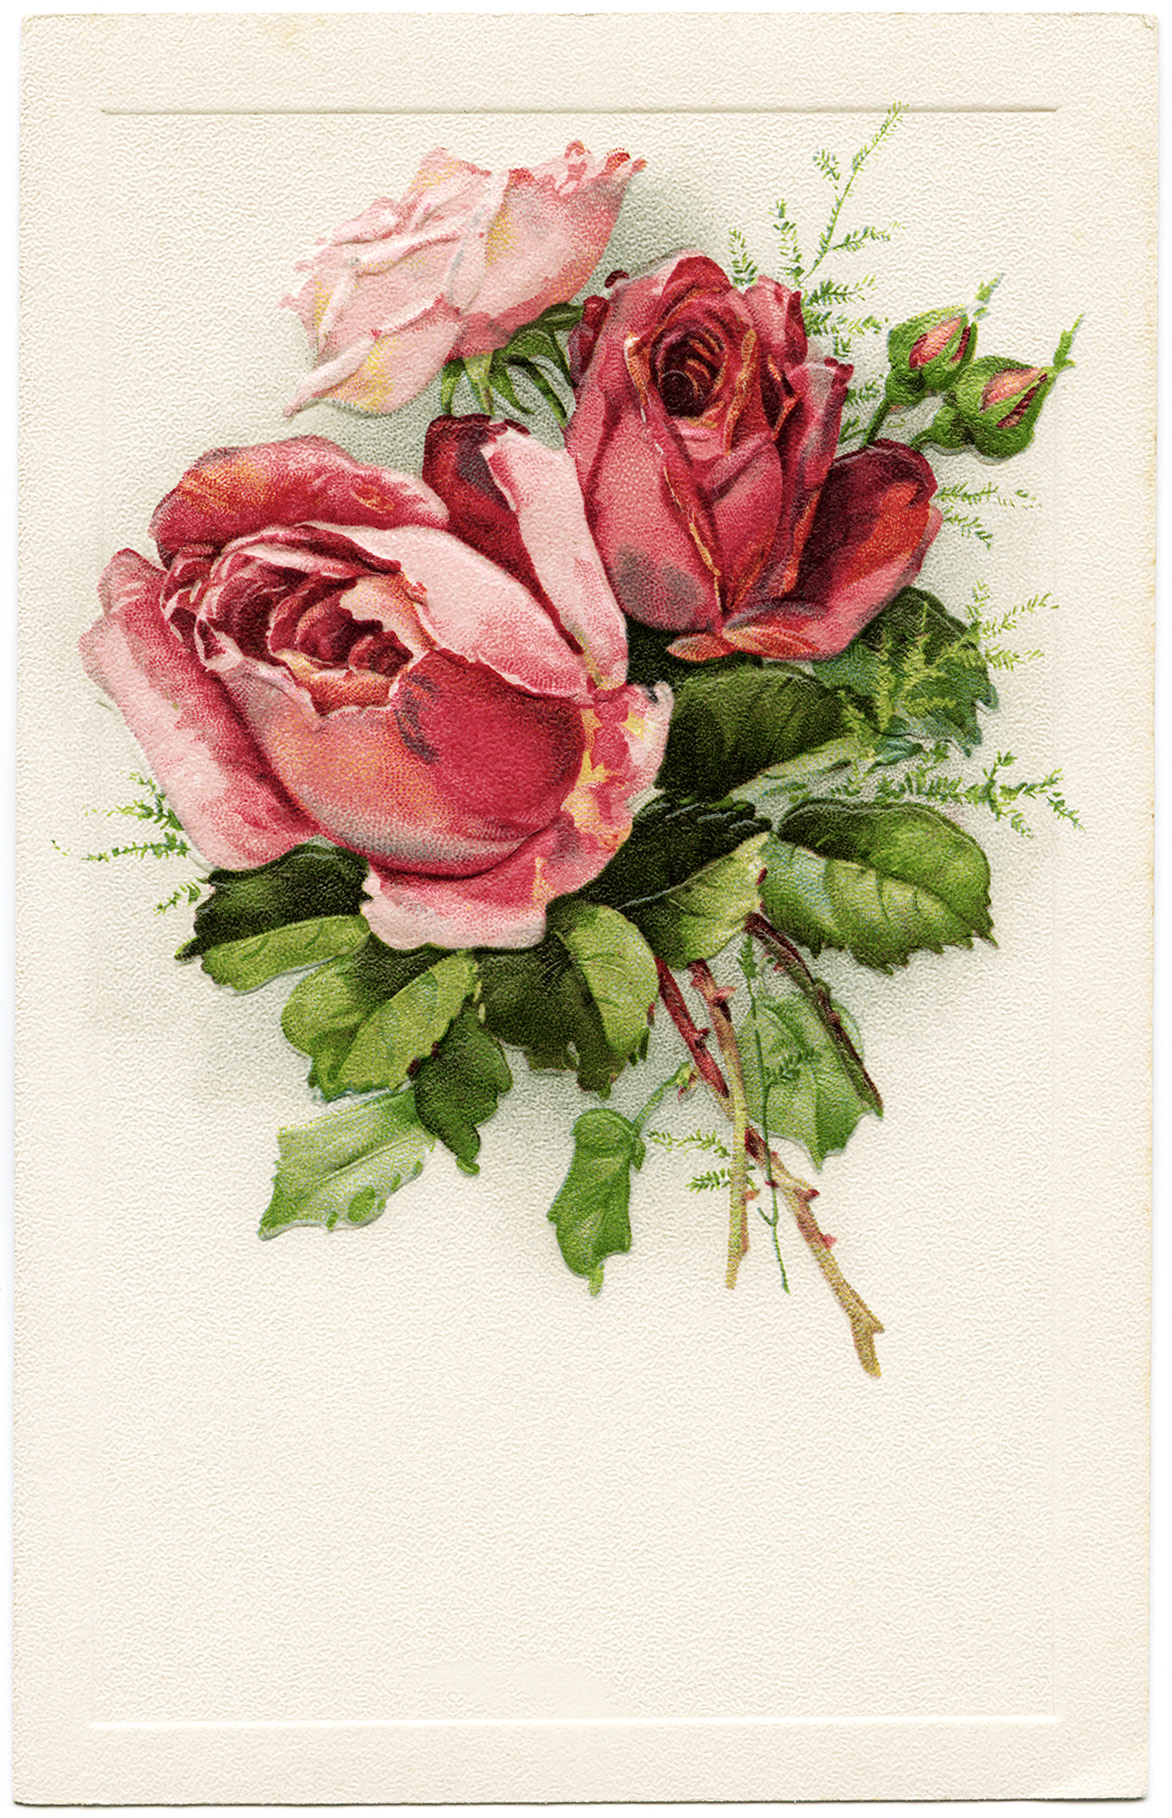 Free Vintage Image My Birthday Wish Roses Postcard Old Design Shop Blog